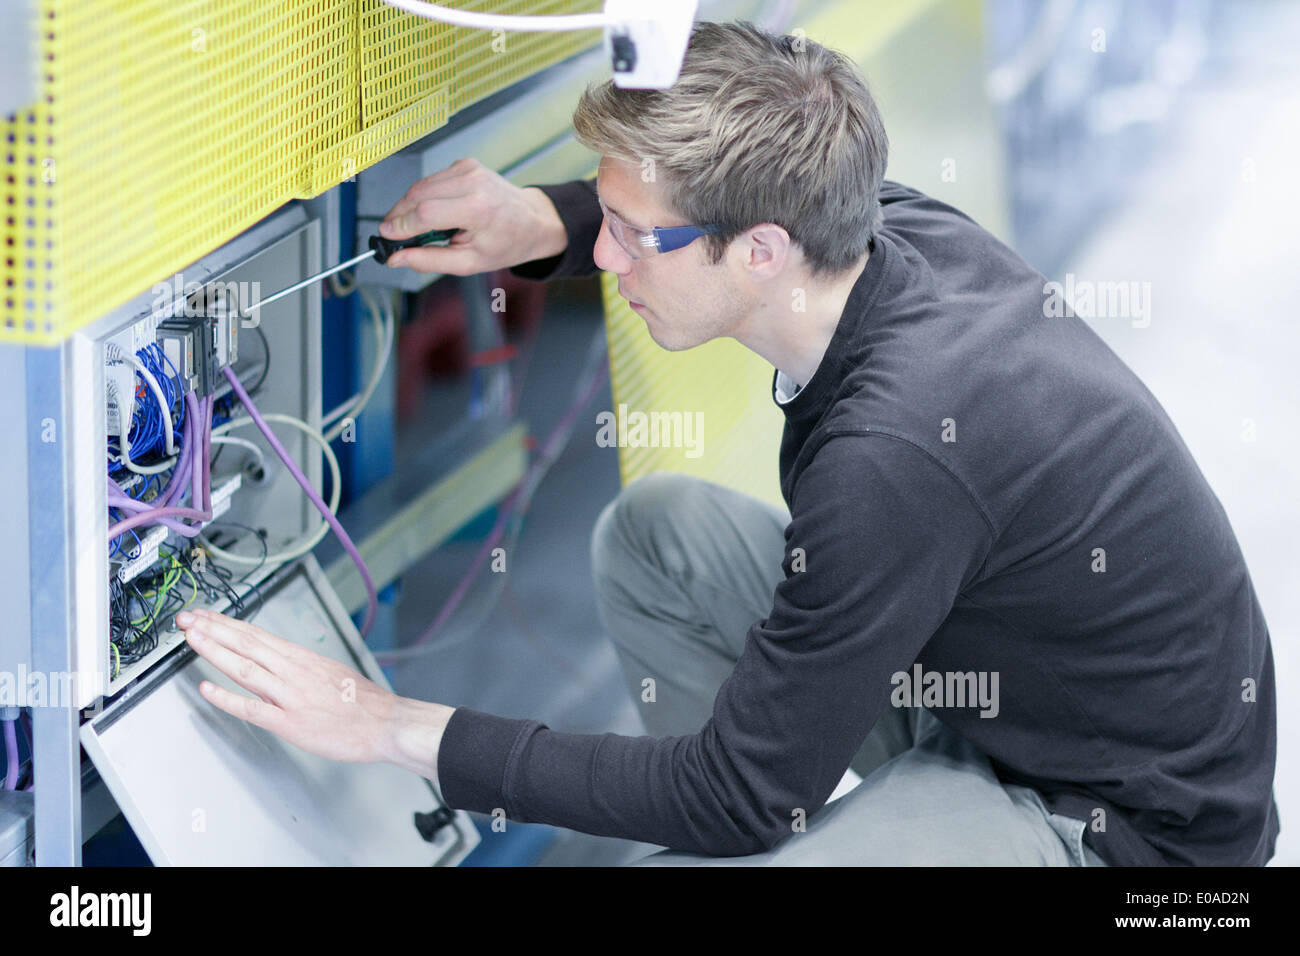 Mid adult male technician maintaining equipment in engineering plant - Stock Image